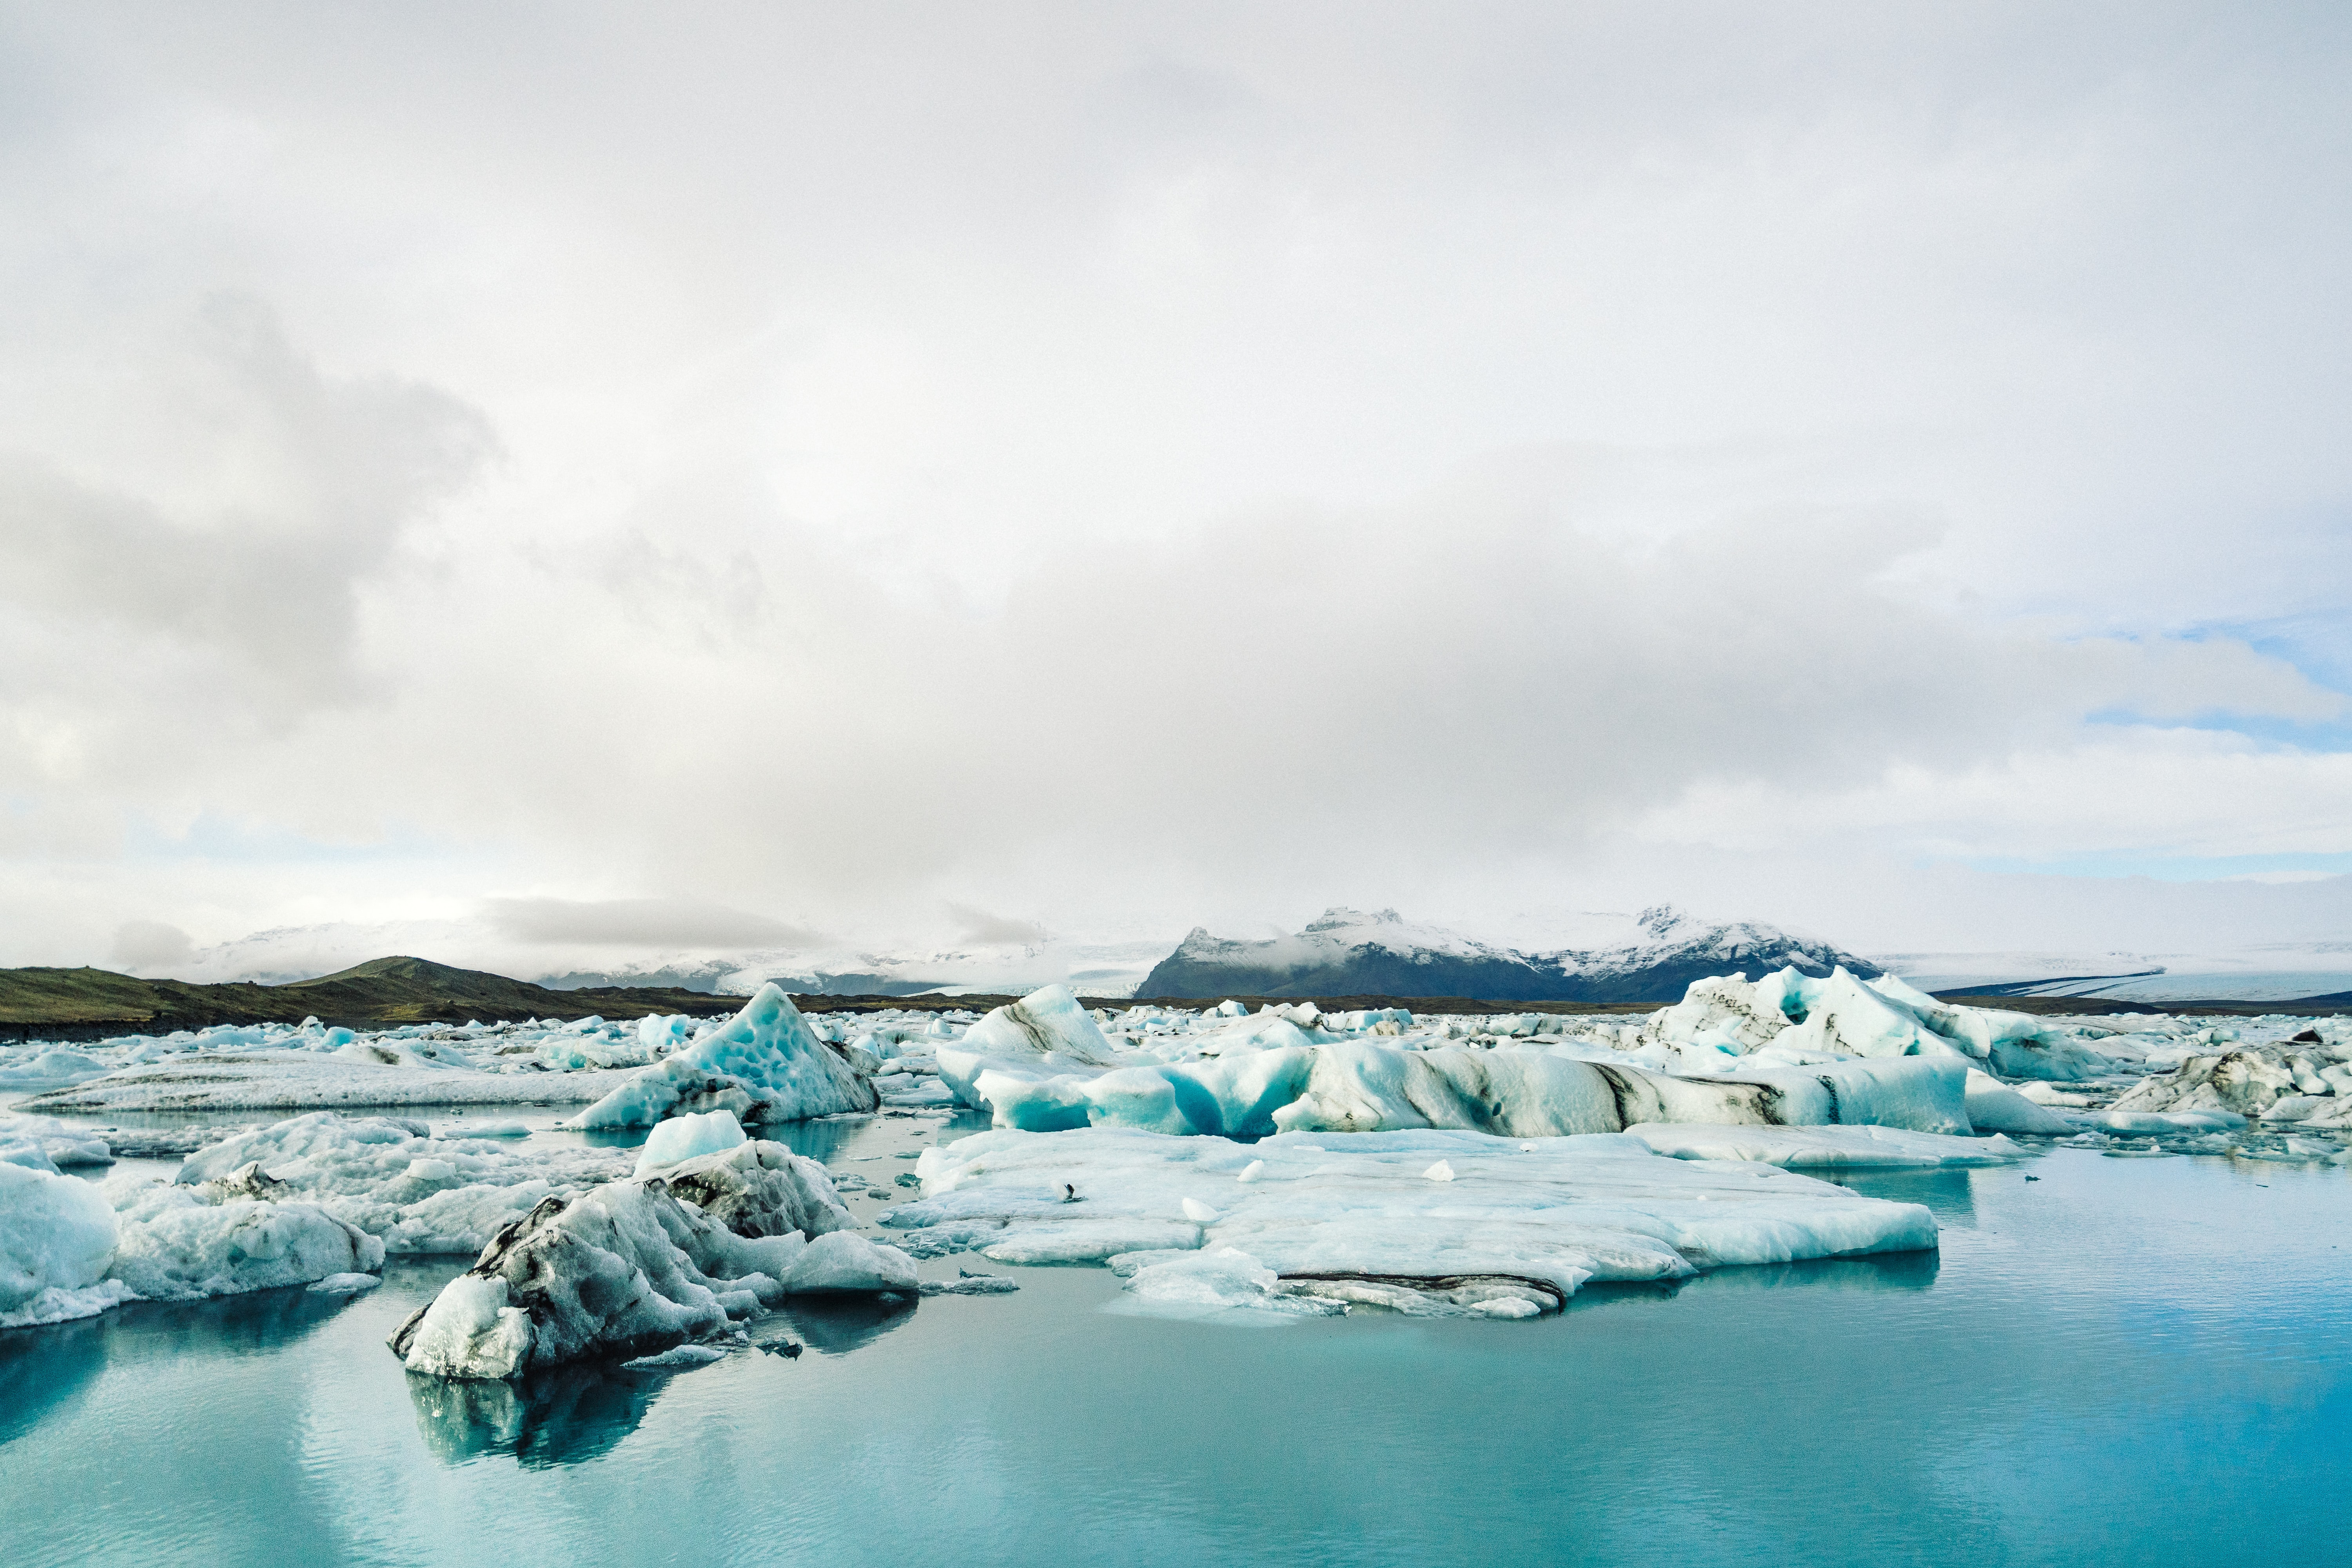 Small icebergs in bright turquoise blue water with thick clouds above